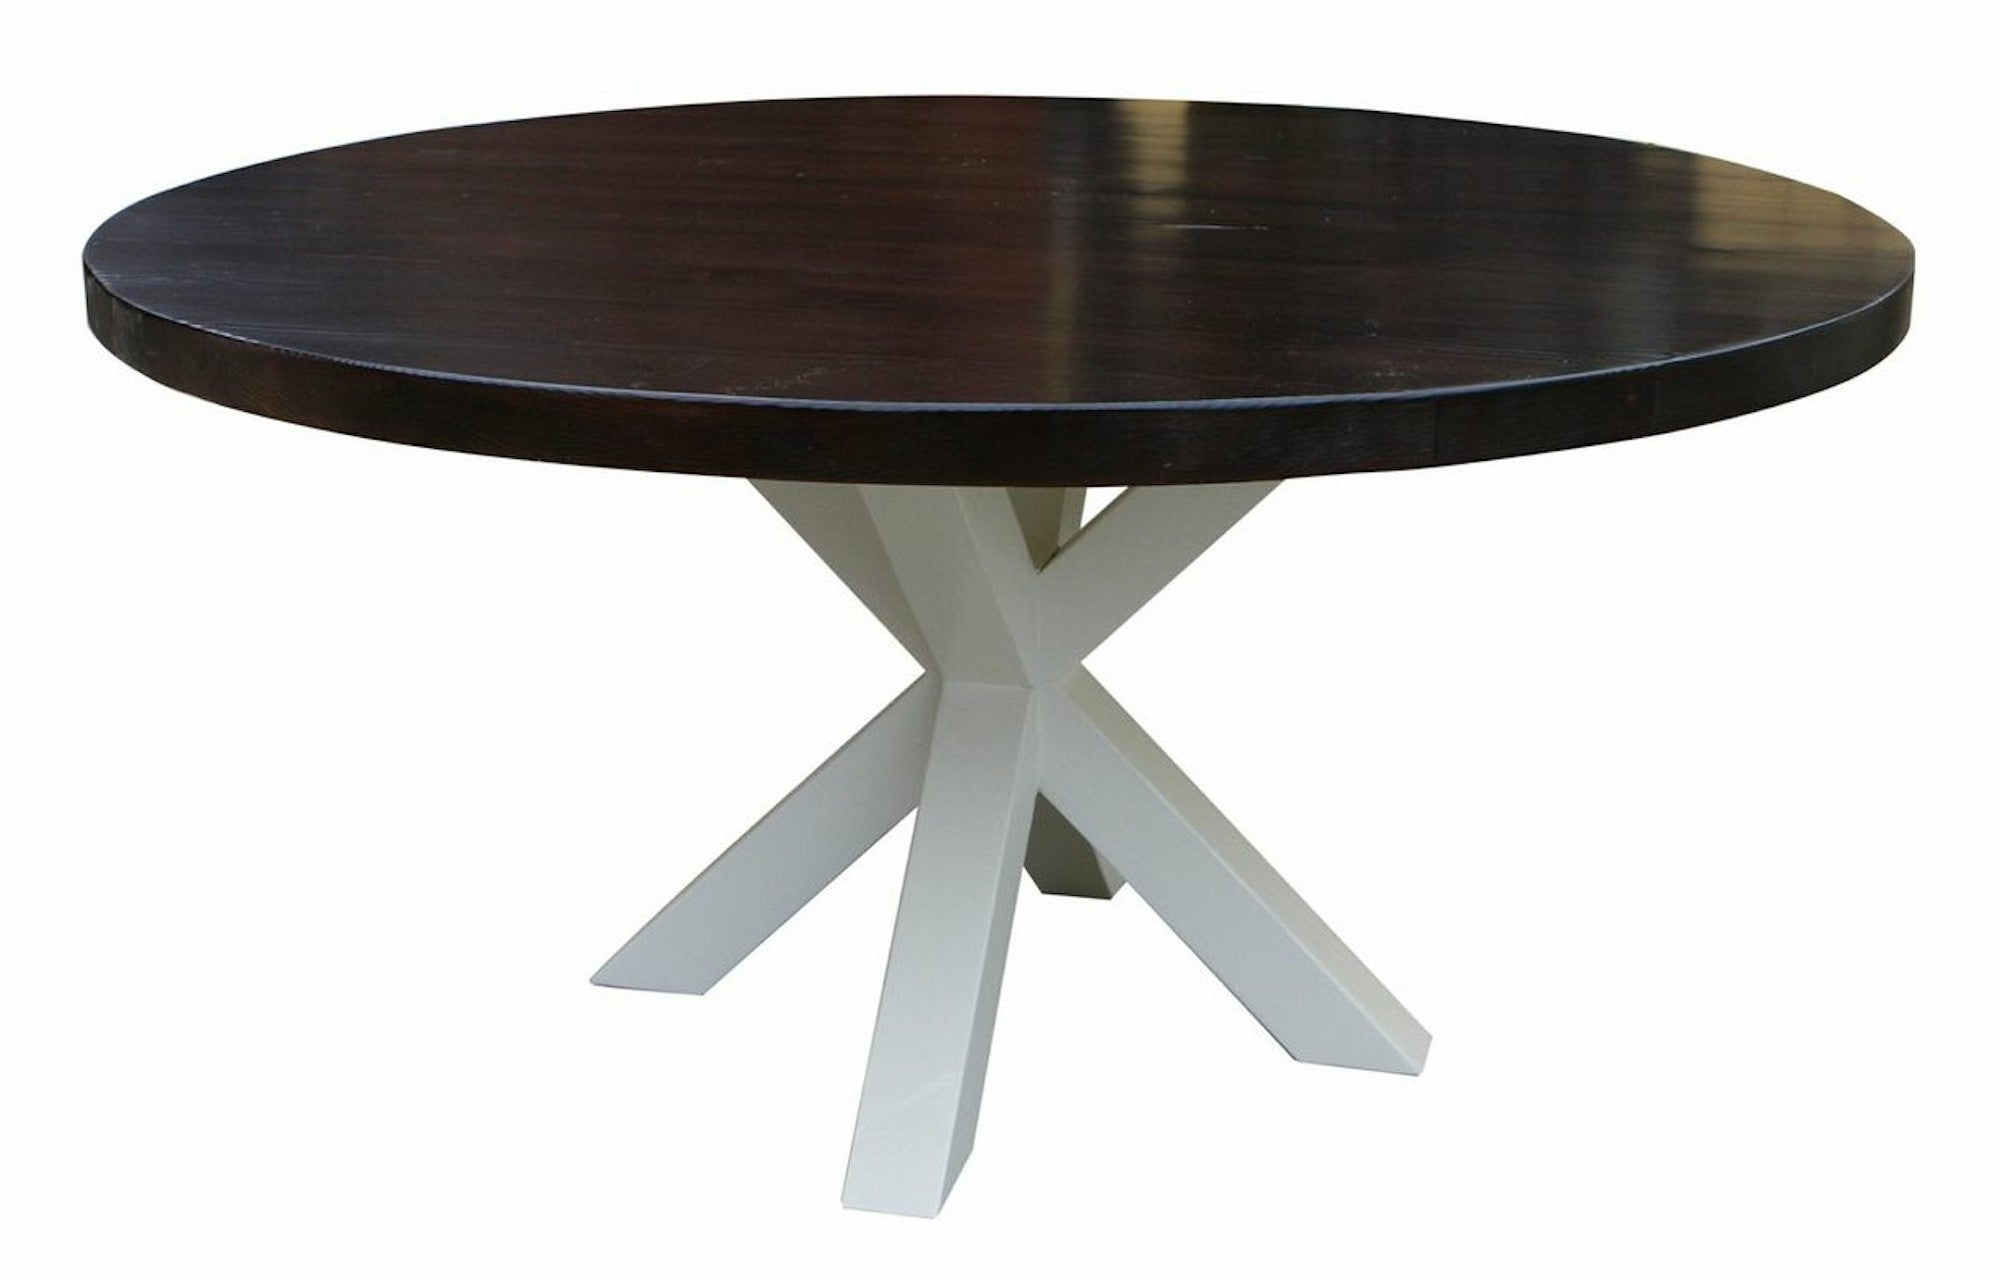 Arden Round Dining Table Built In Reclaimed Wood